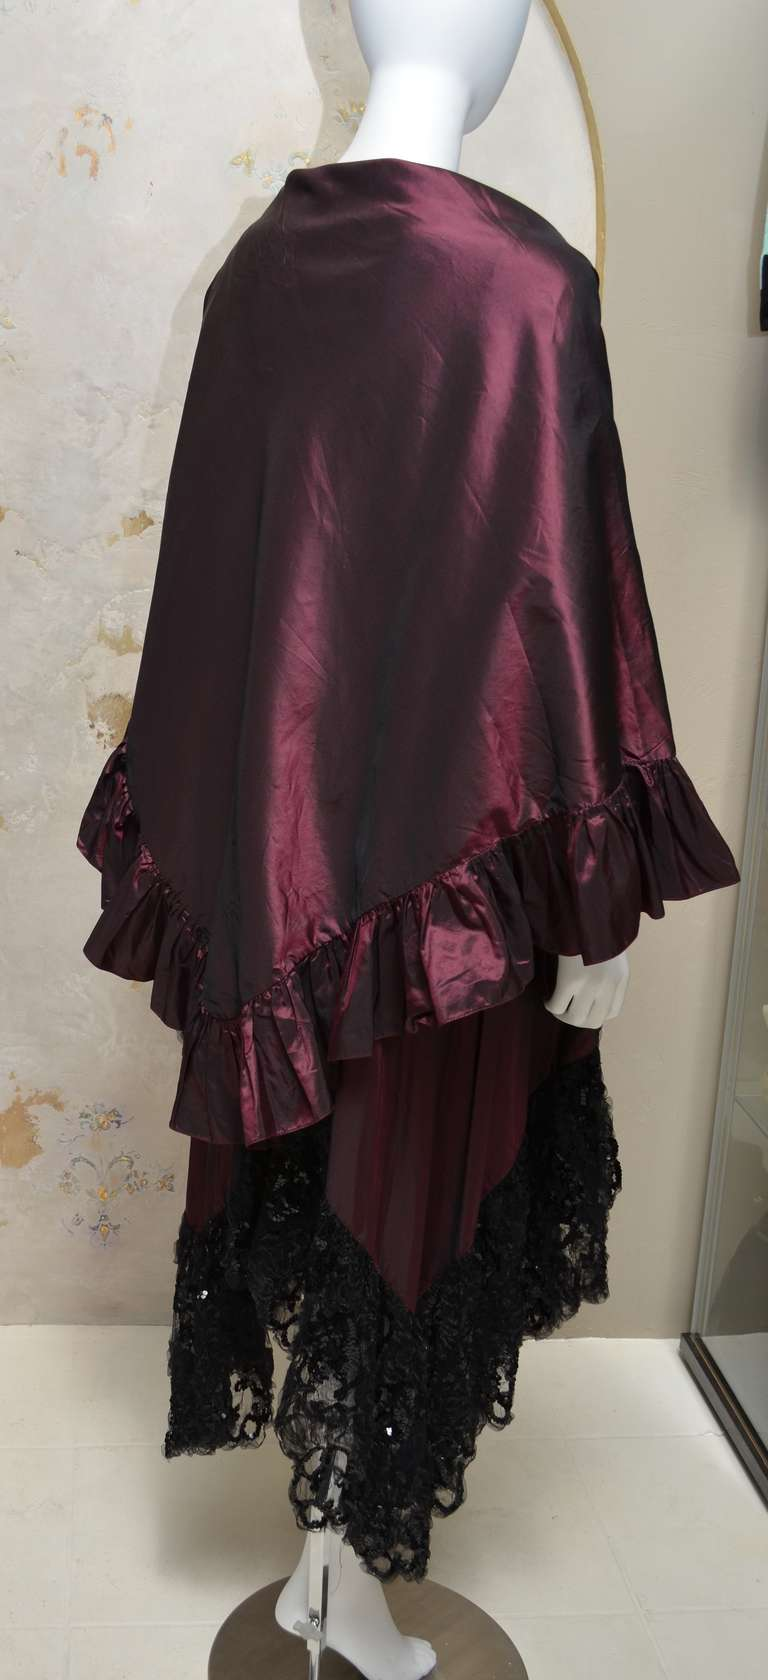 Yves Saint Laurent Vintage YSL Taffeta and Lace Gown For Sale 2